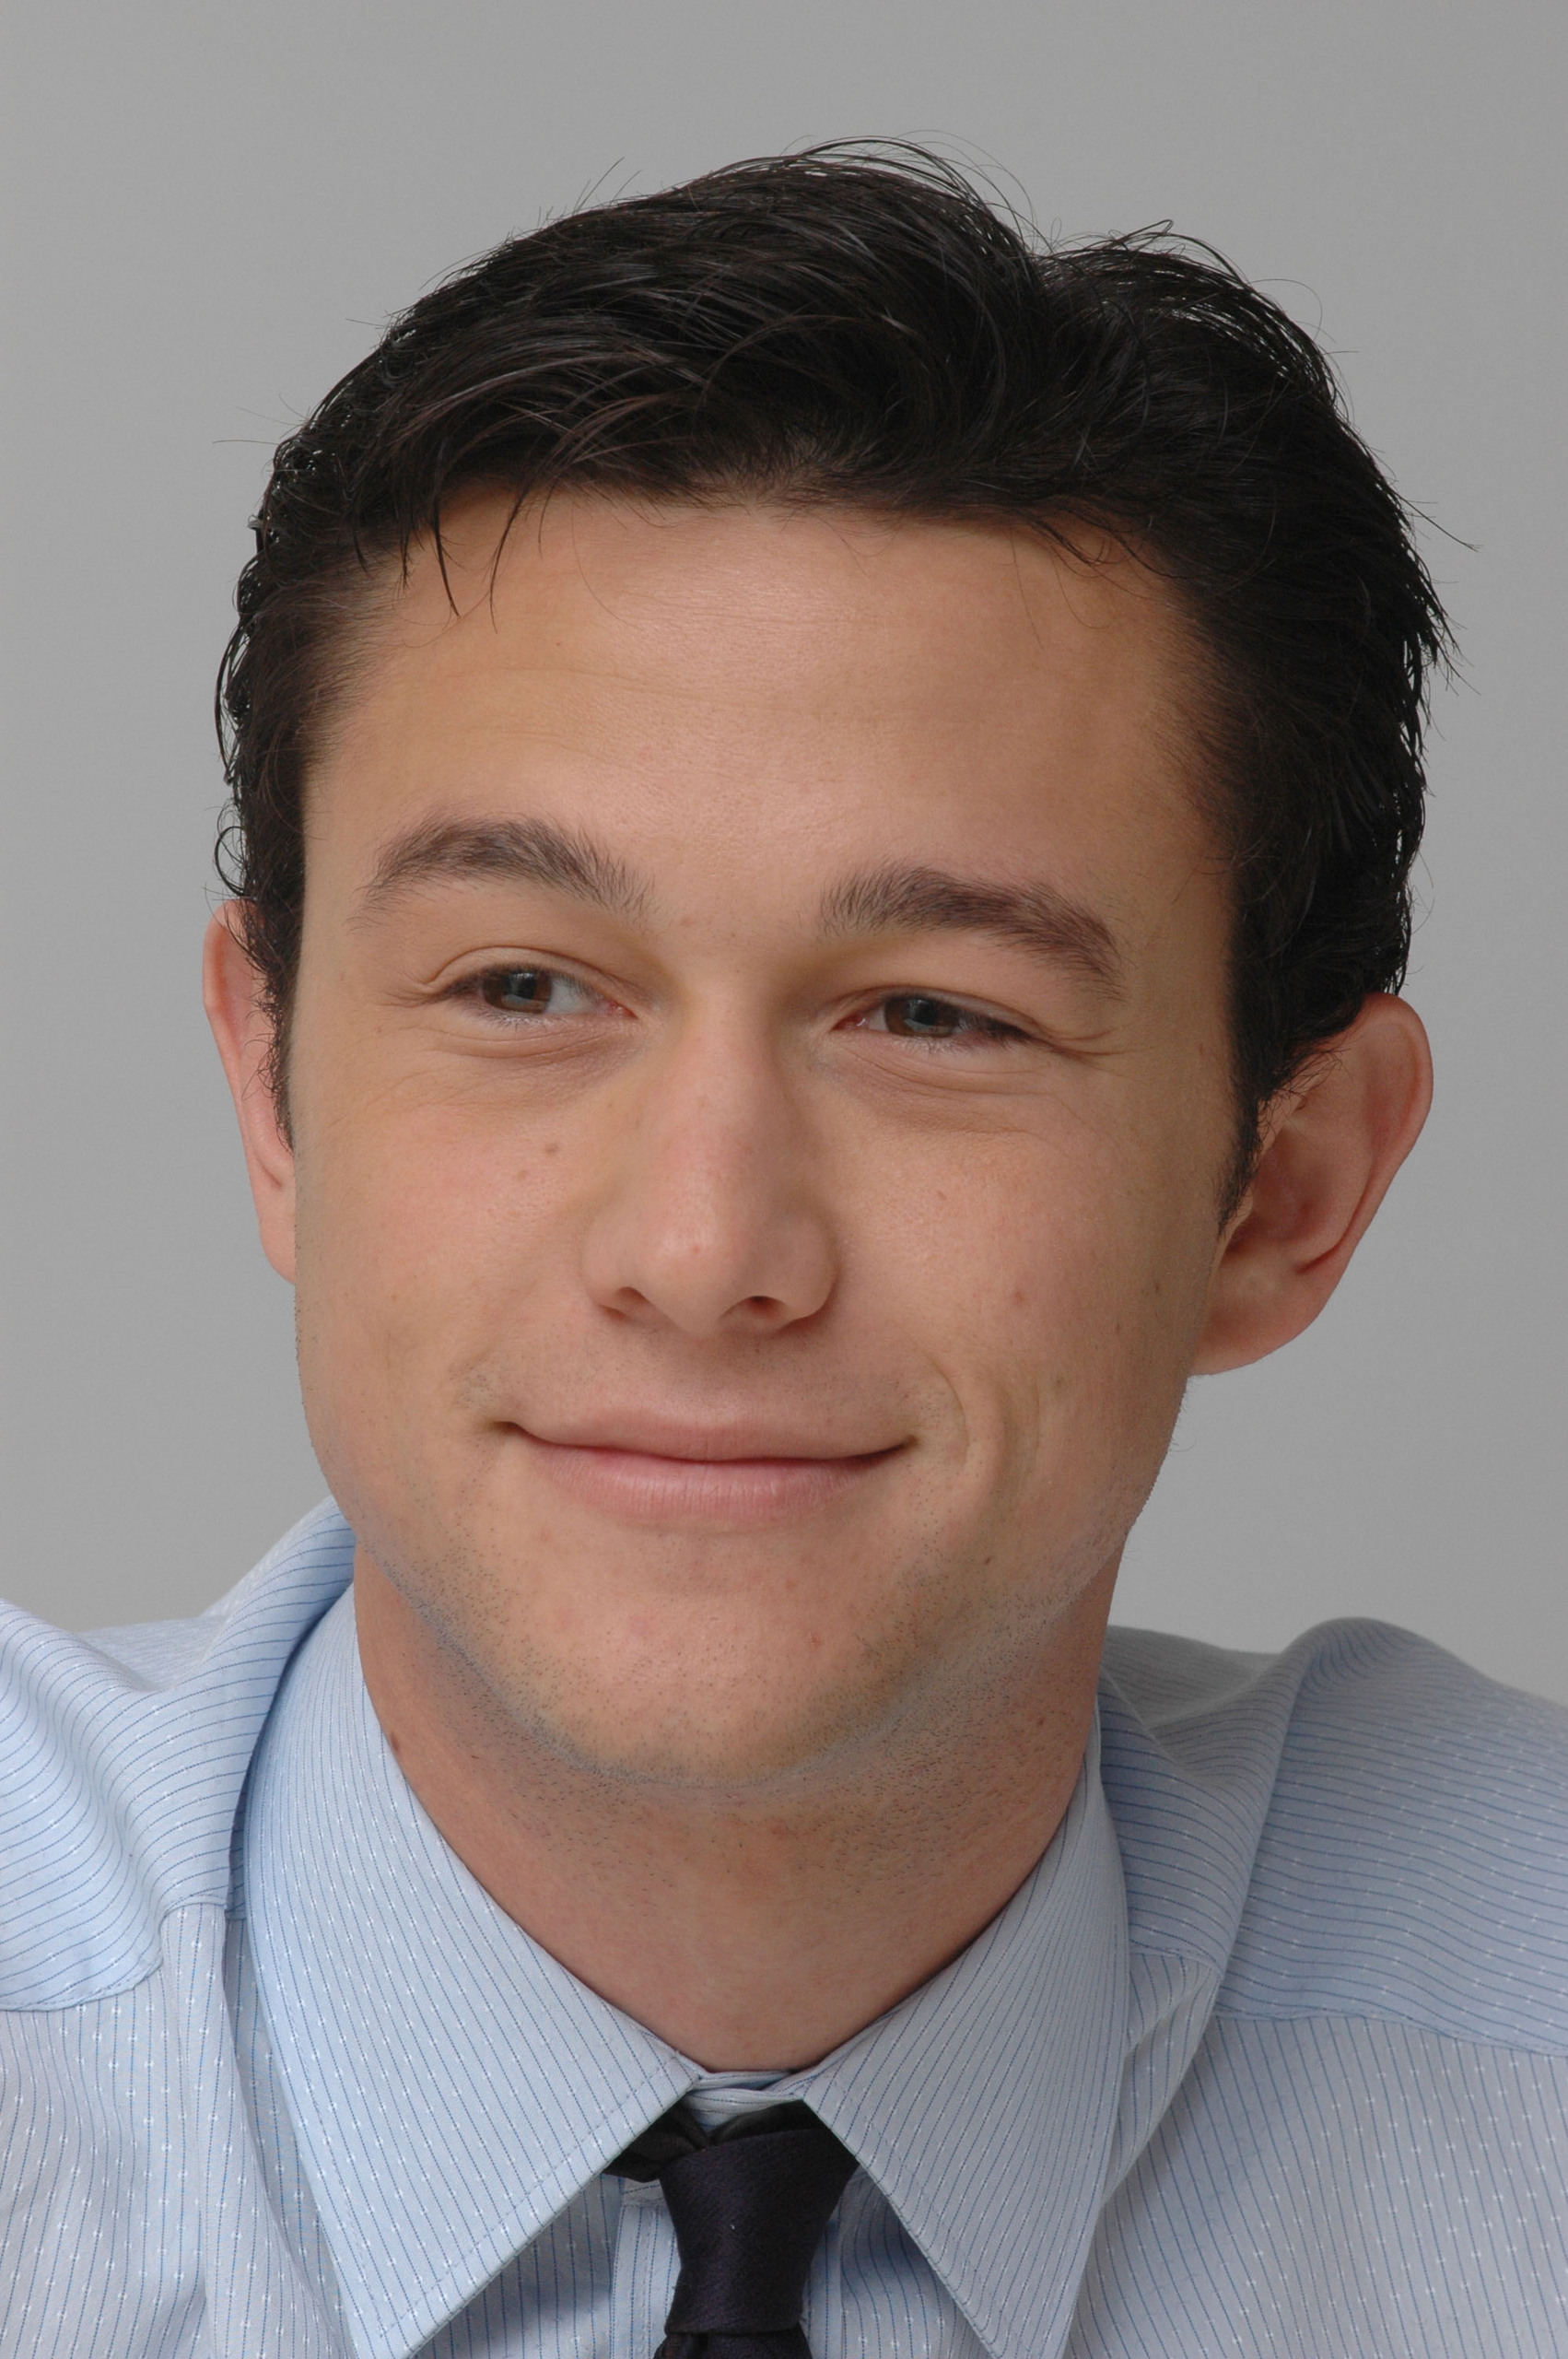 Joseph - Joseph Gordon-Levitt Photo (23539821) - Fanpop Joseph Gordon Levitt